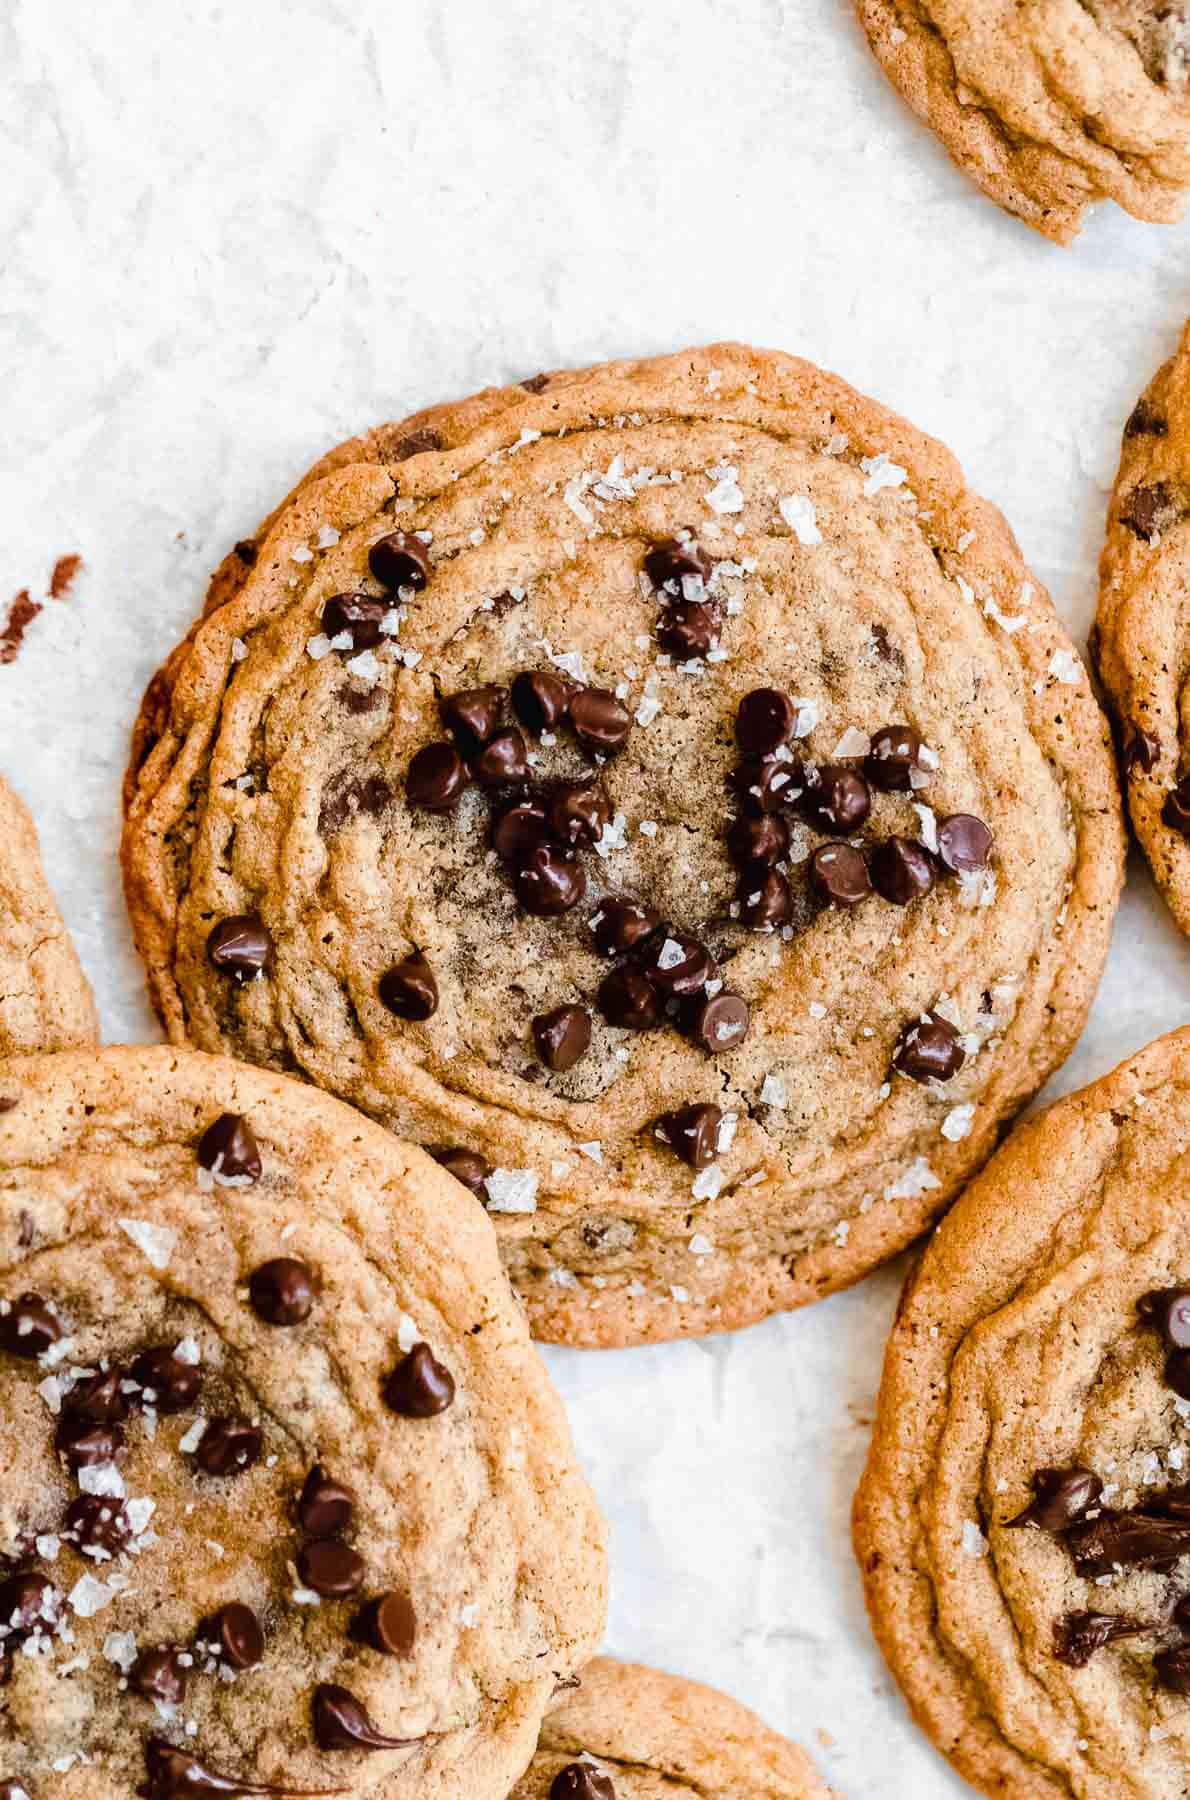 Cookies layered on each other with chocolate chips in the middle.